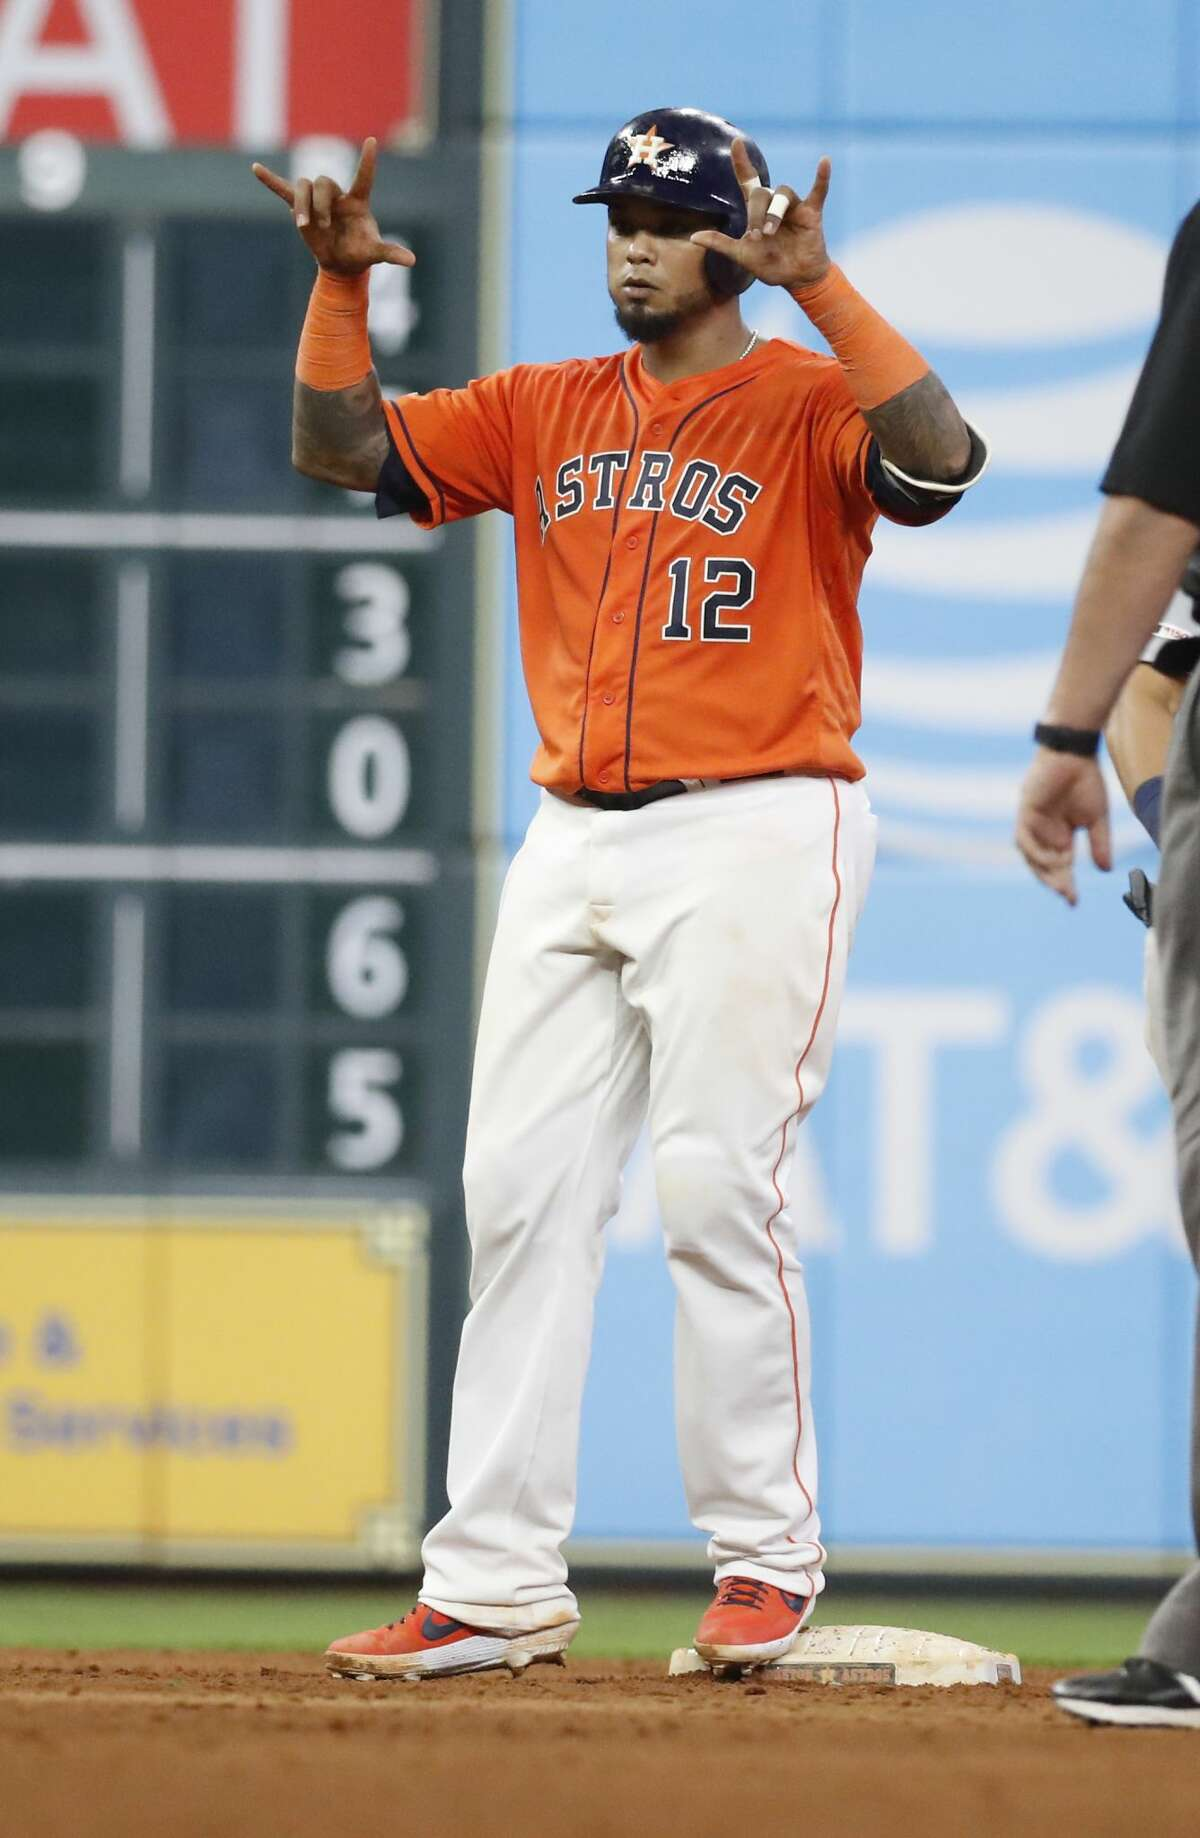 Houston Astros Martin Maldonado (12) gestures back to the dugout after hitting a double during the sixth inning of an MLB baseball game at Minute Maid Park, Friday, Sept. 6, 2019, in Houston.